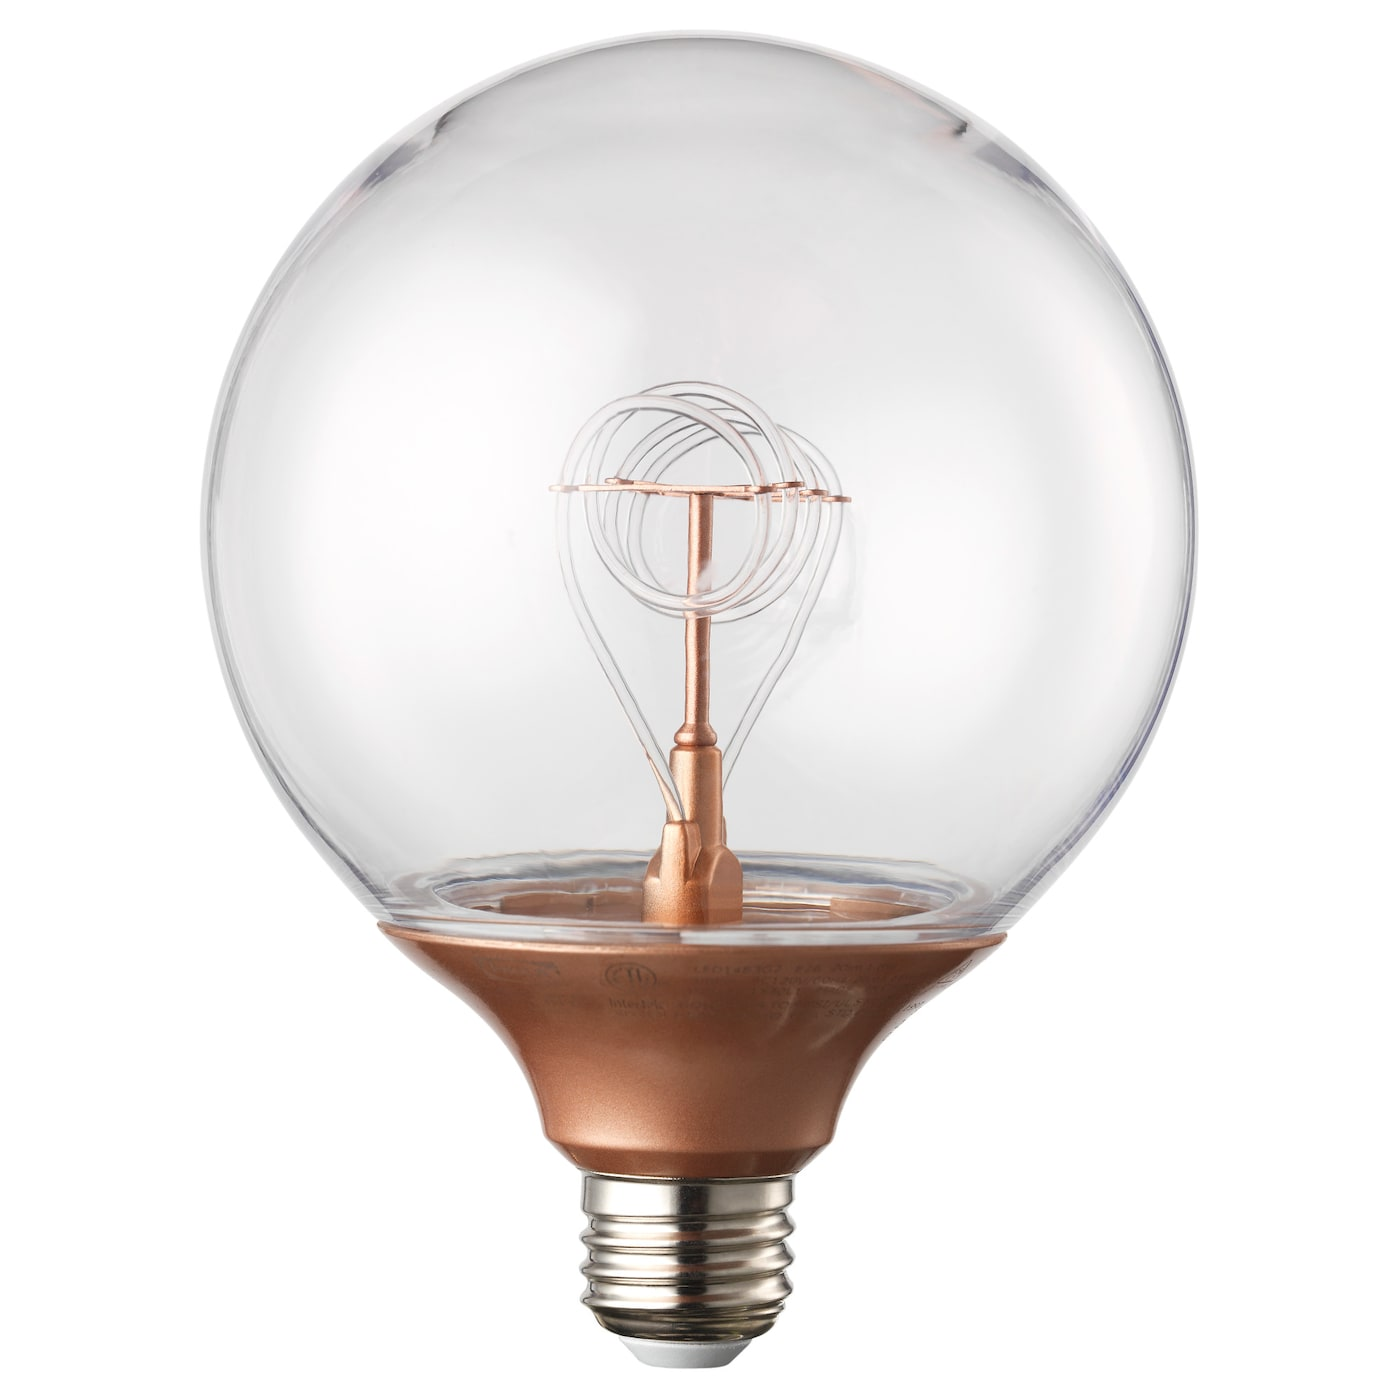 nittio led bulb e27 20 lumen globe copper colour 120 mm ikea. Black Bedroom Furniture Sets. Home Design Ideas